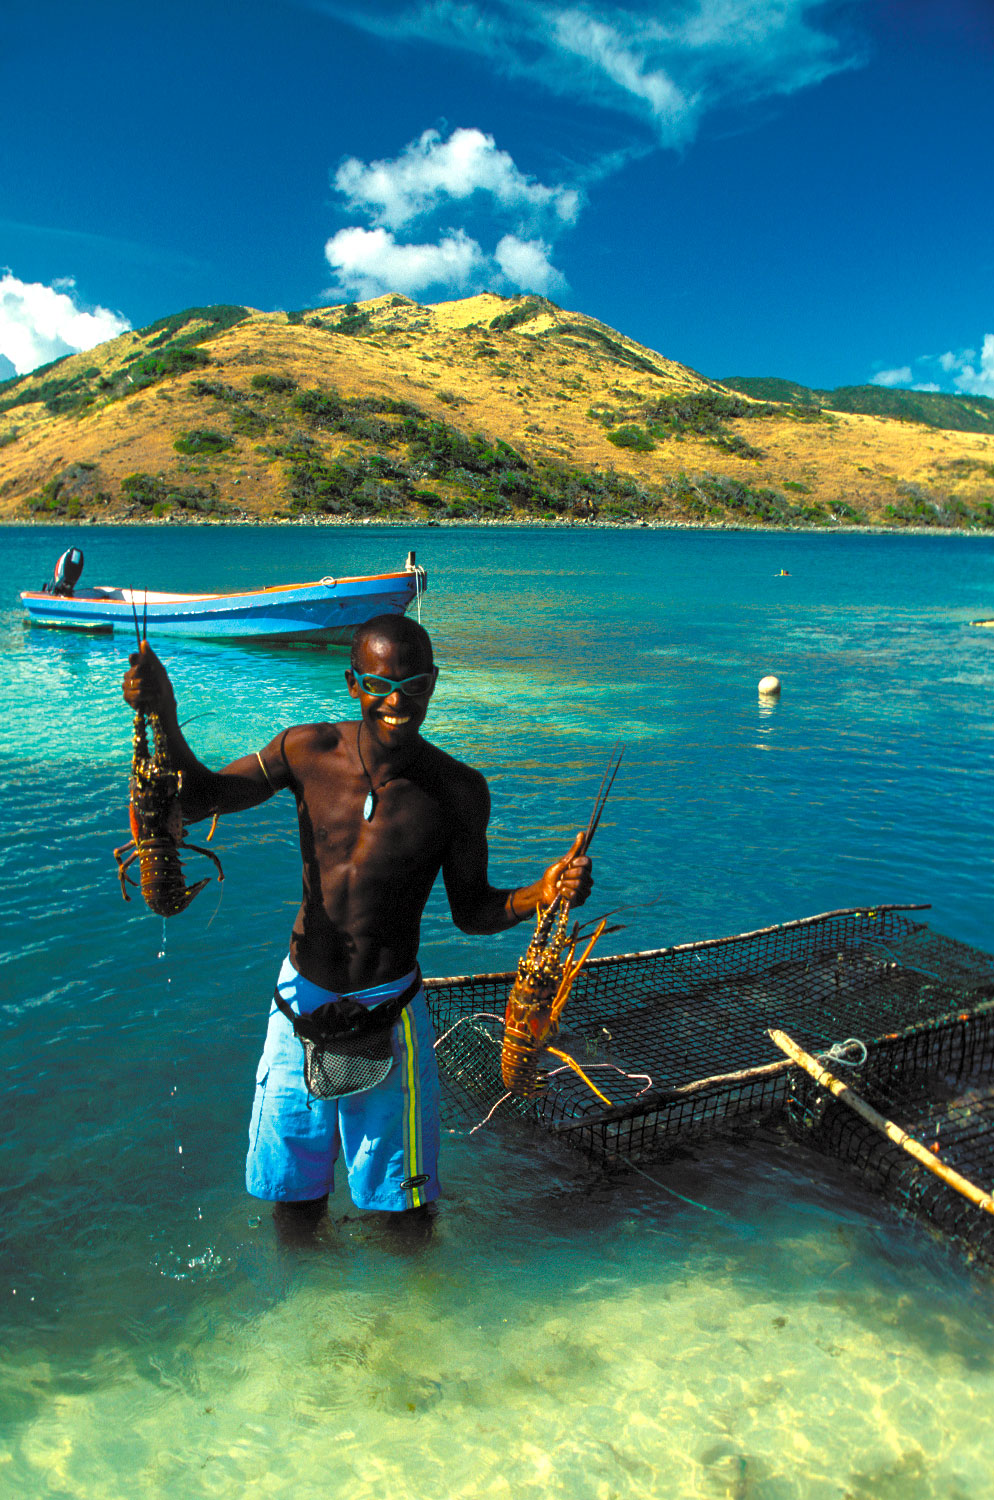 Lobsters caught off Pinel Island will have a starring role at dinner in Grand Case in just a few hours. Photograph by Donald Nausbaum